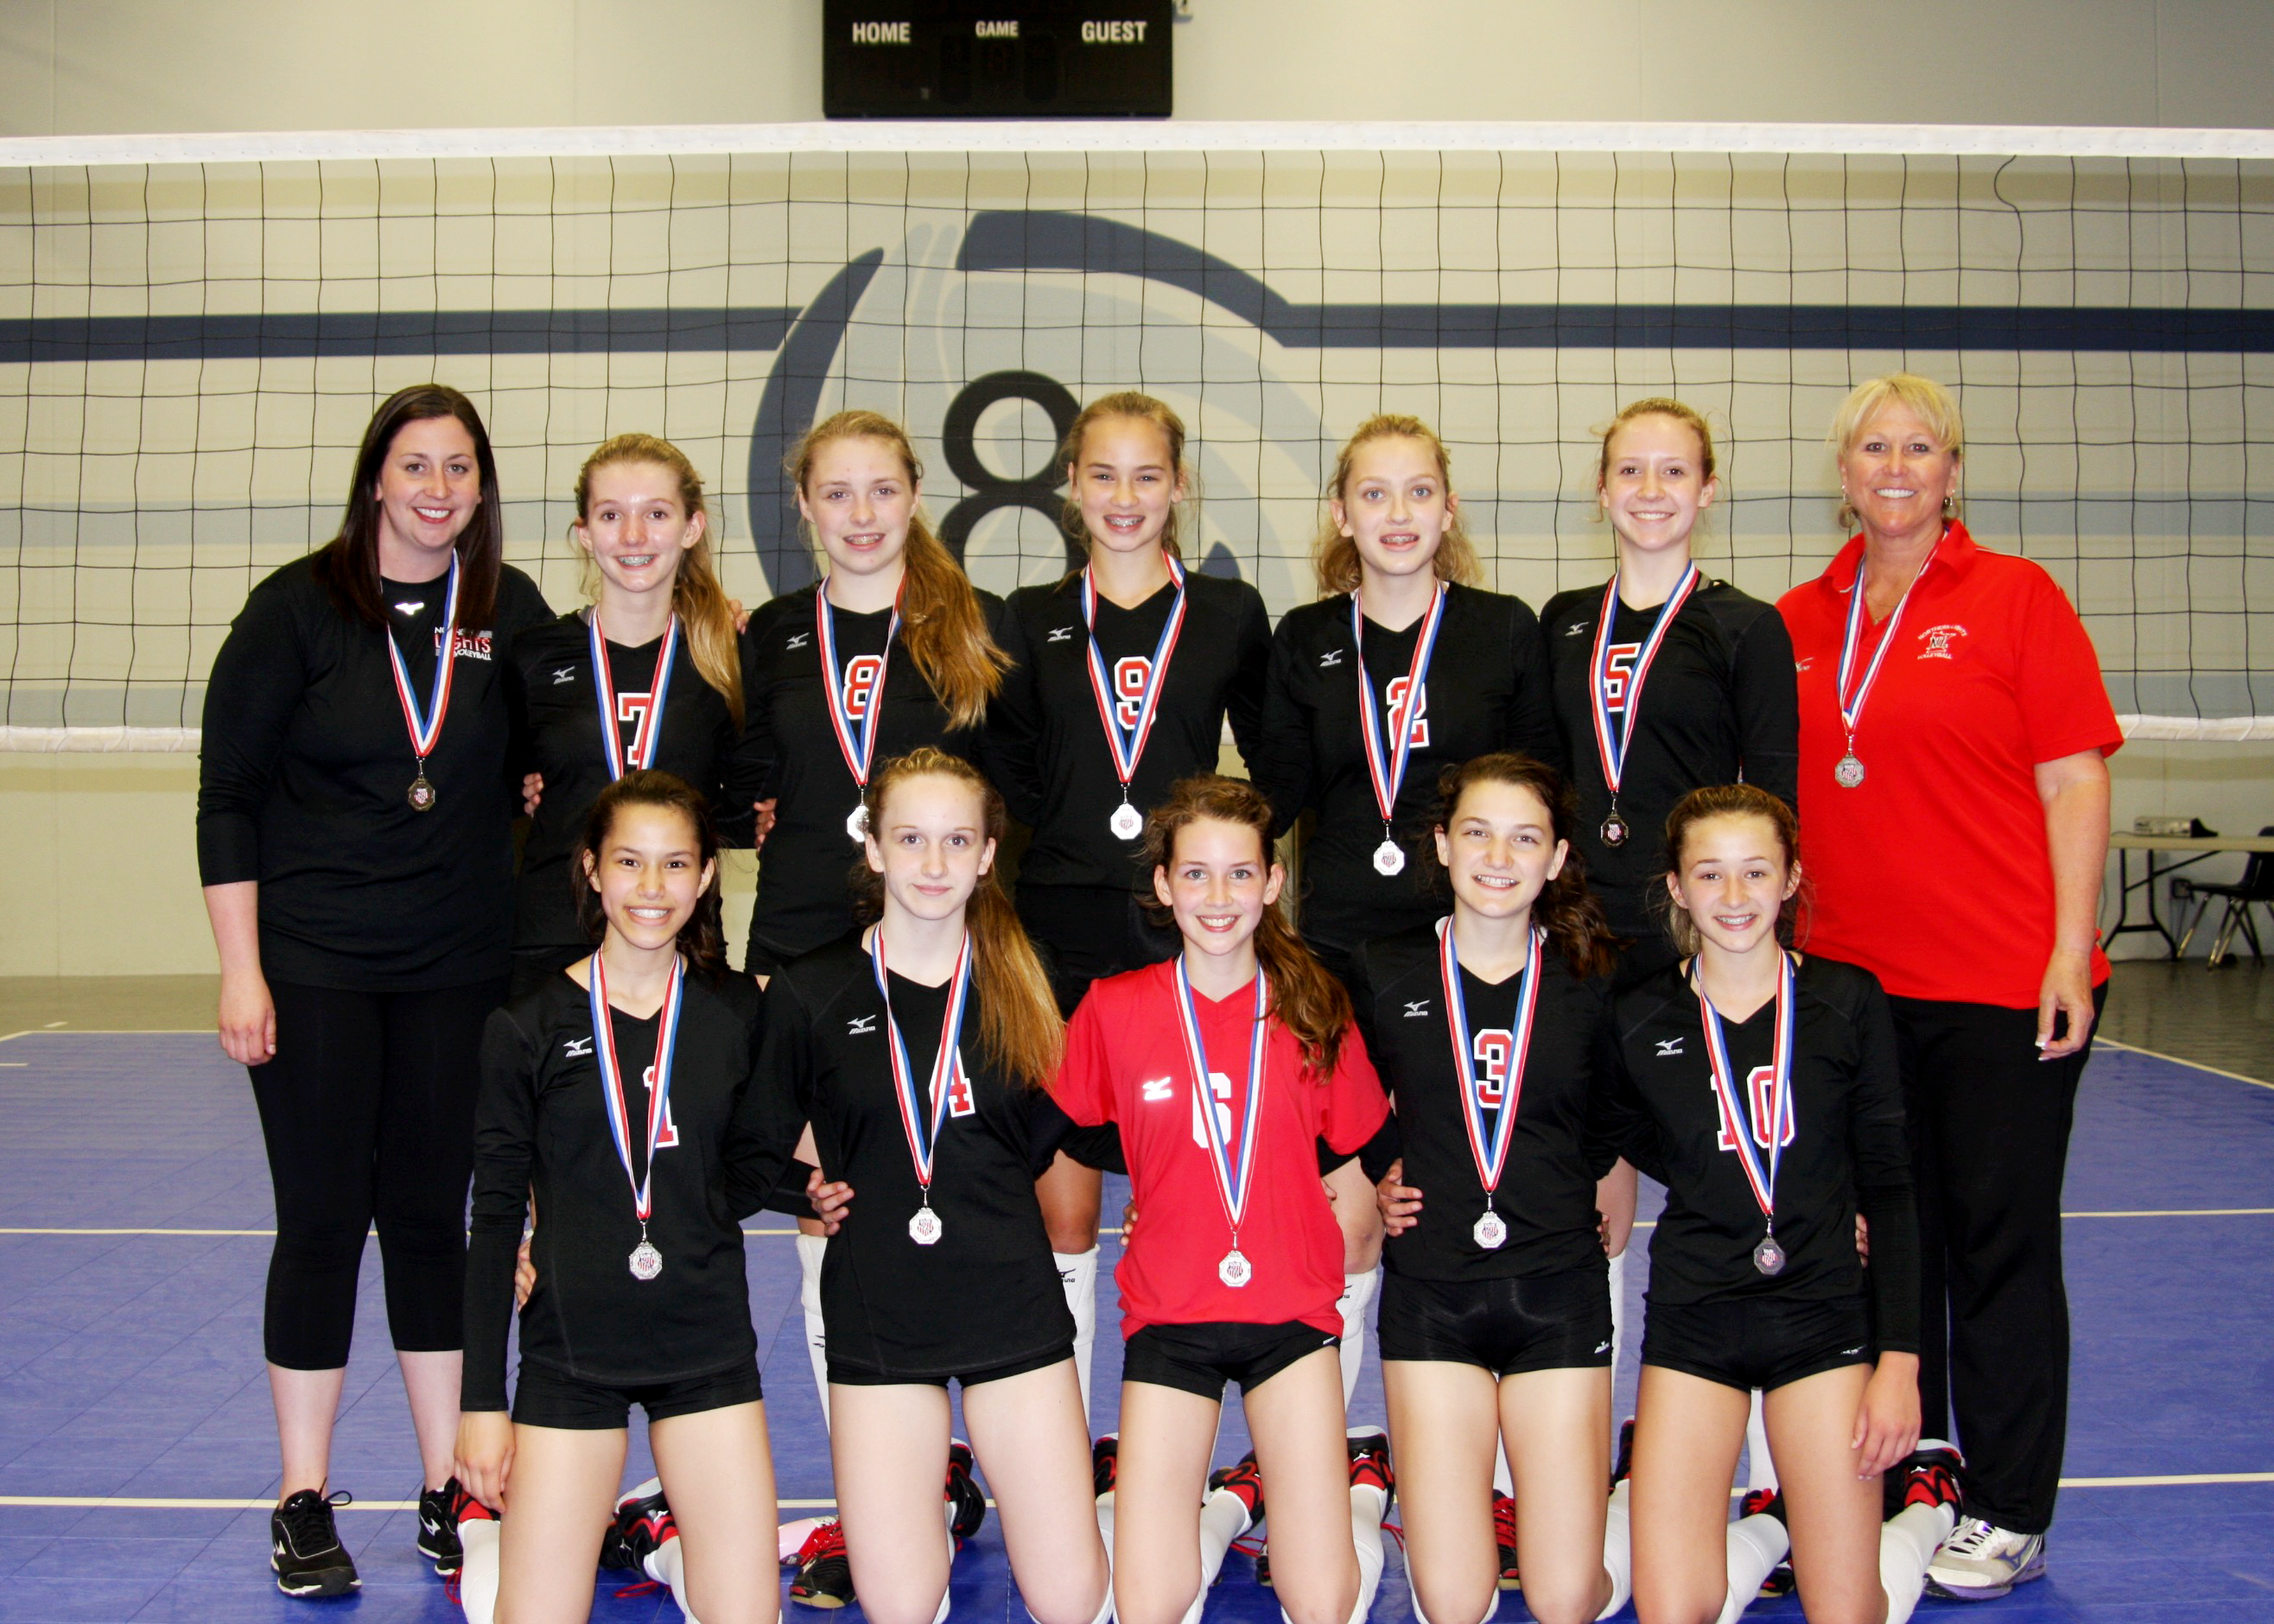 131 2nd Place At 2018 Aau Super Regional Northern Lights Junior Volleyball